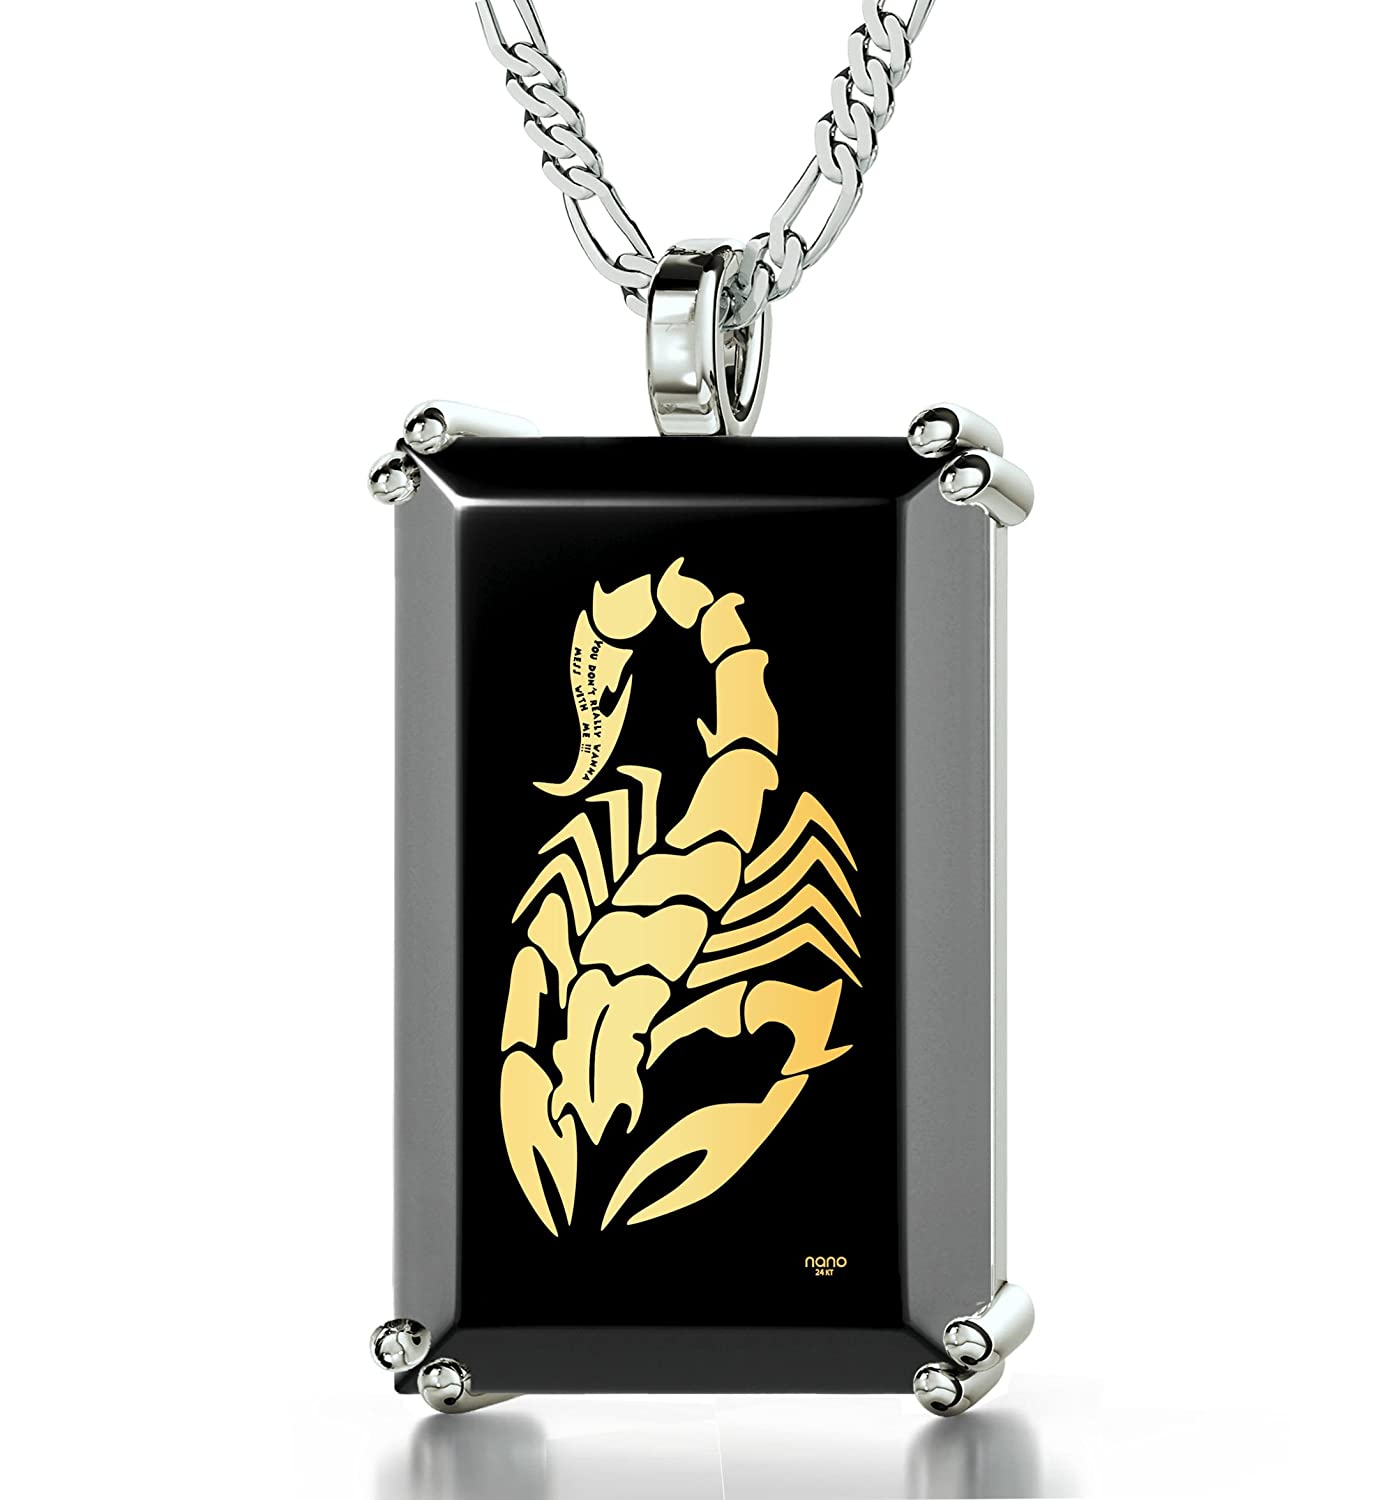 925 sterling silver mens scorpion necklace inscribed with you don 925 sterling silver mens scorpion necklace inscribed with you dont really wanna mess with me in 24k gold onto a black onyx pendant 20 amazon aloadofball Image collections